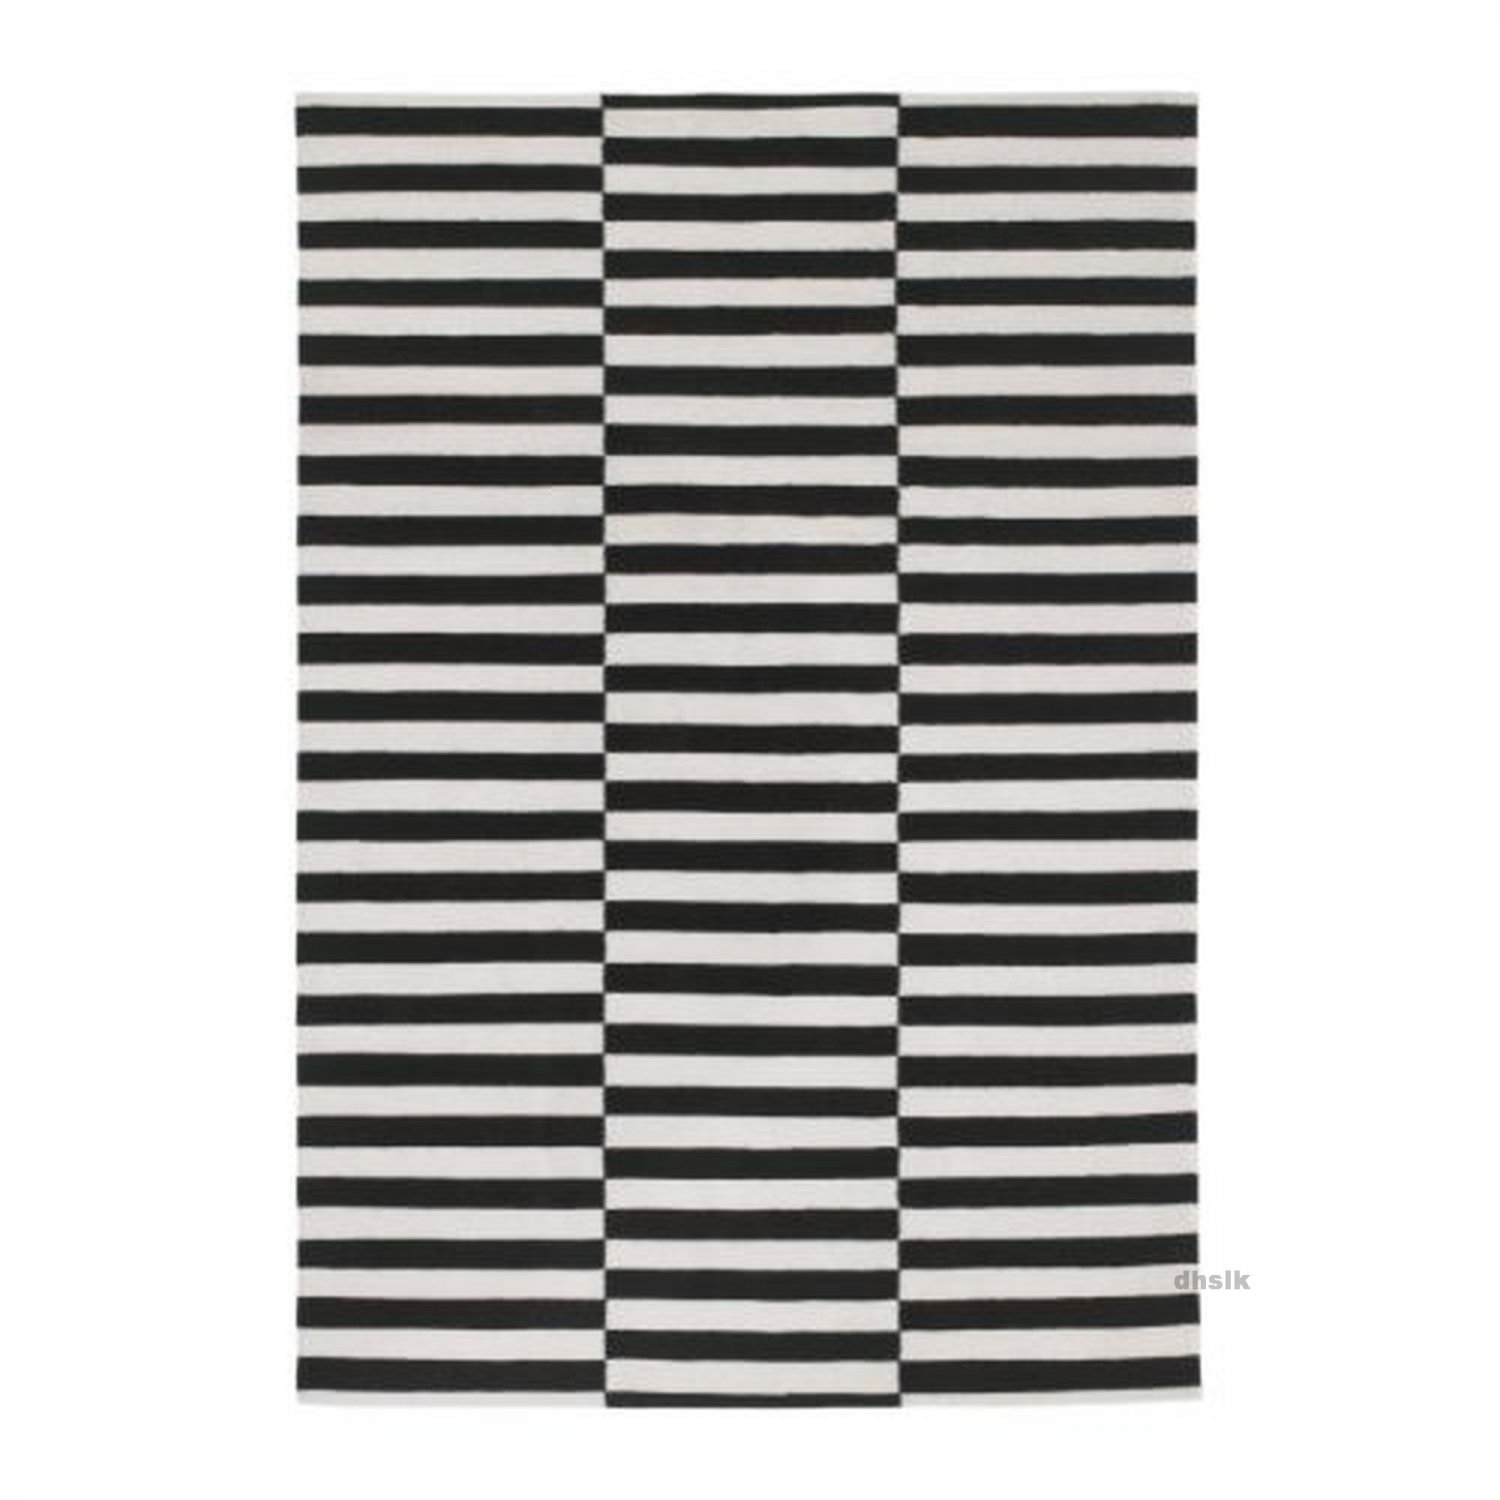 Ikea stockholm black white broken stripe area rug mat wool for Ikea rugs